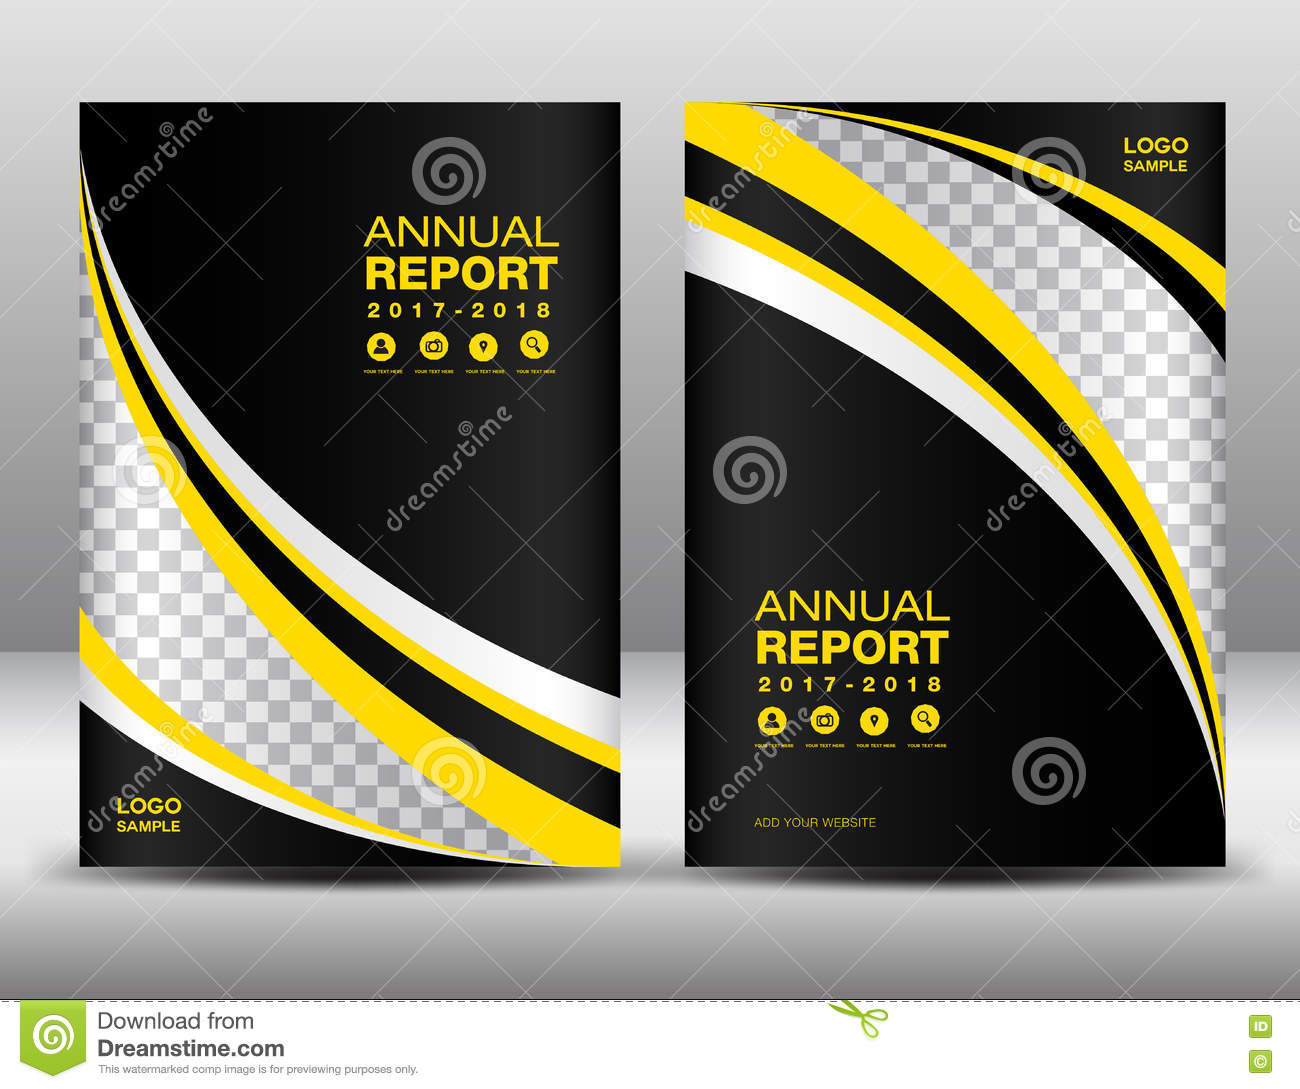 Yellow and black Cover template, cover annual report, cover design business brochure flyer, magazine covers, book cover